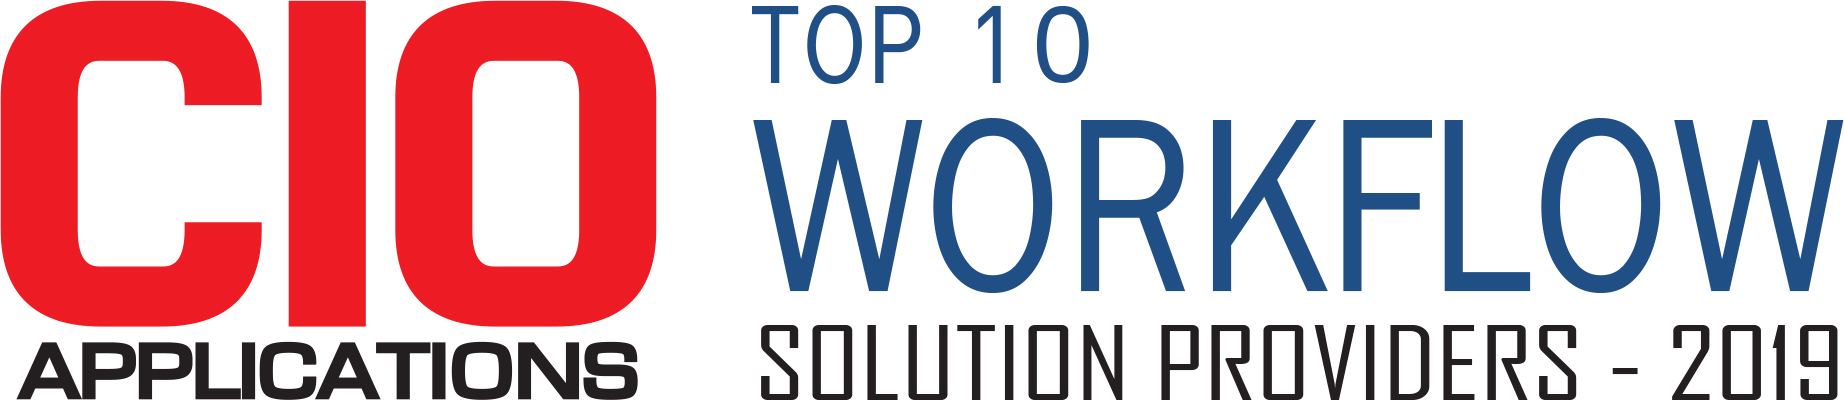 Top 10 Workflow Solution Companies - 2019